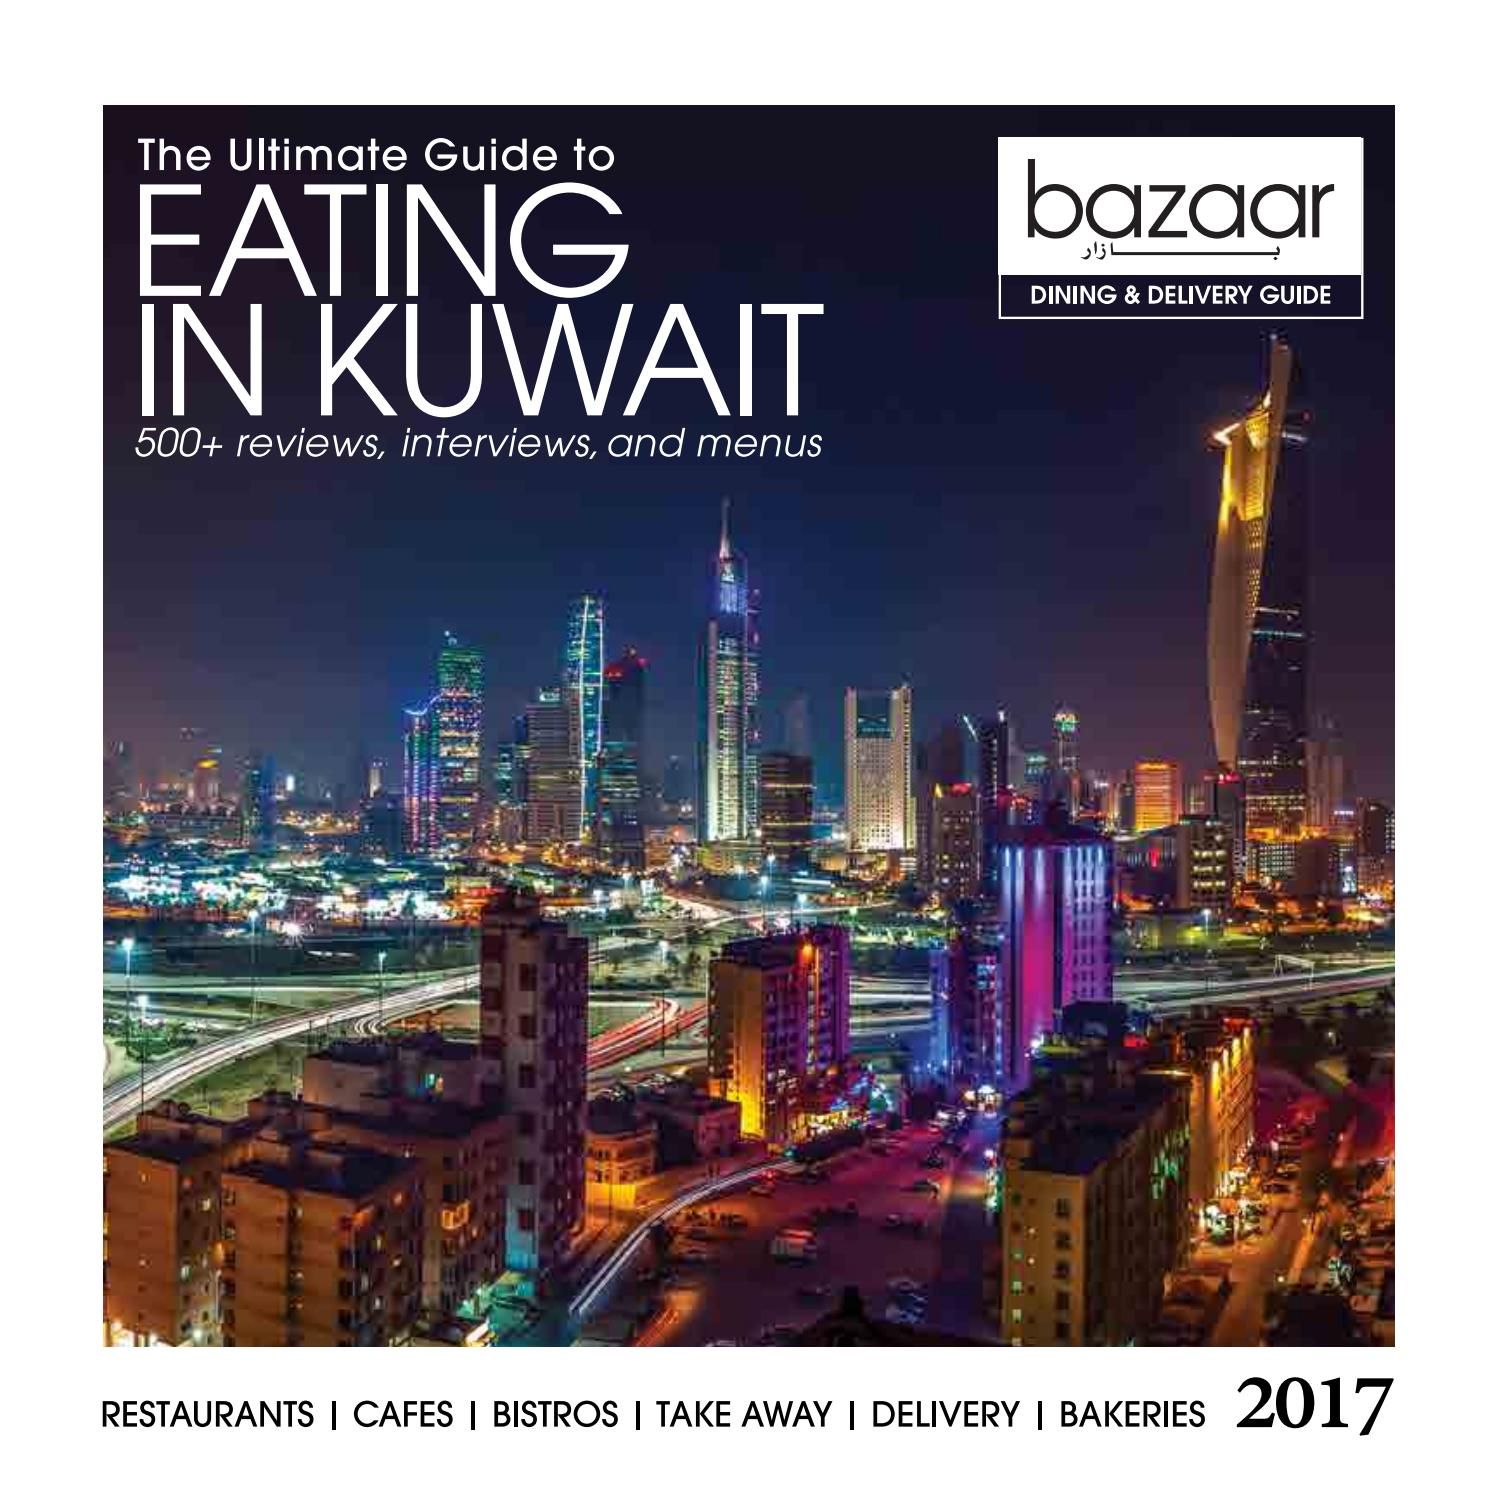 Cucina Restaurant Kuwait Menu 2017 Bazaar Dining And Delivery Guide By Bazaar Magazine Issuu